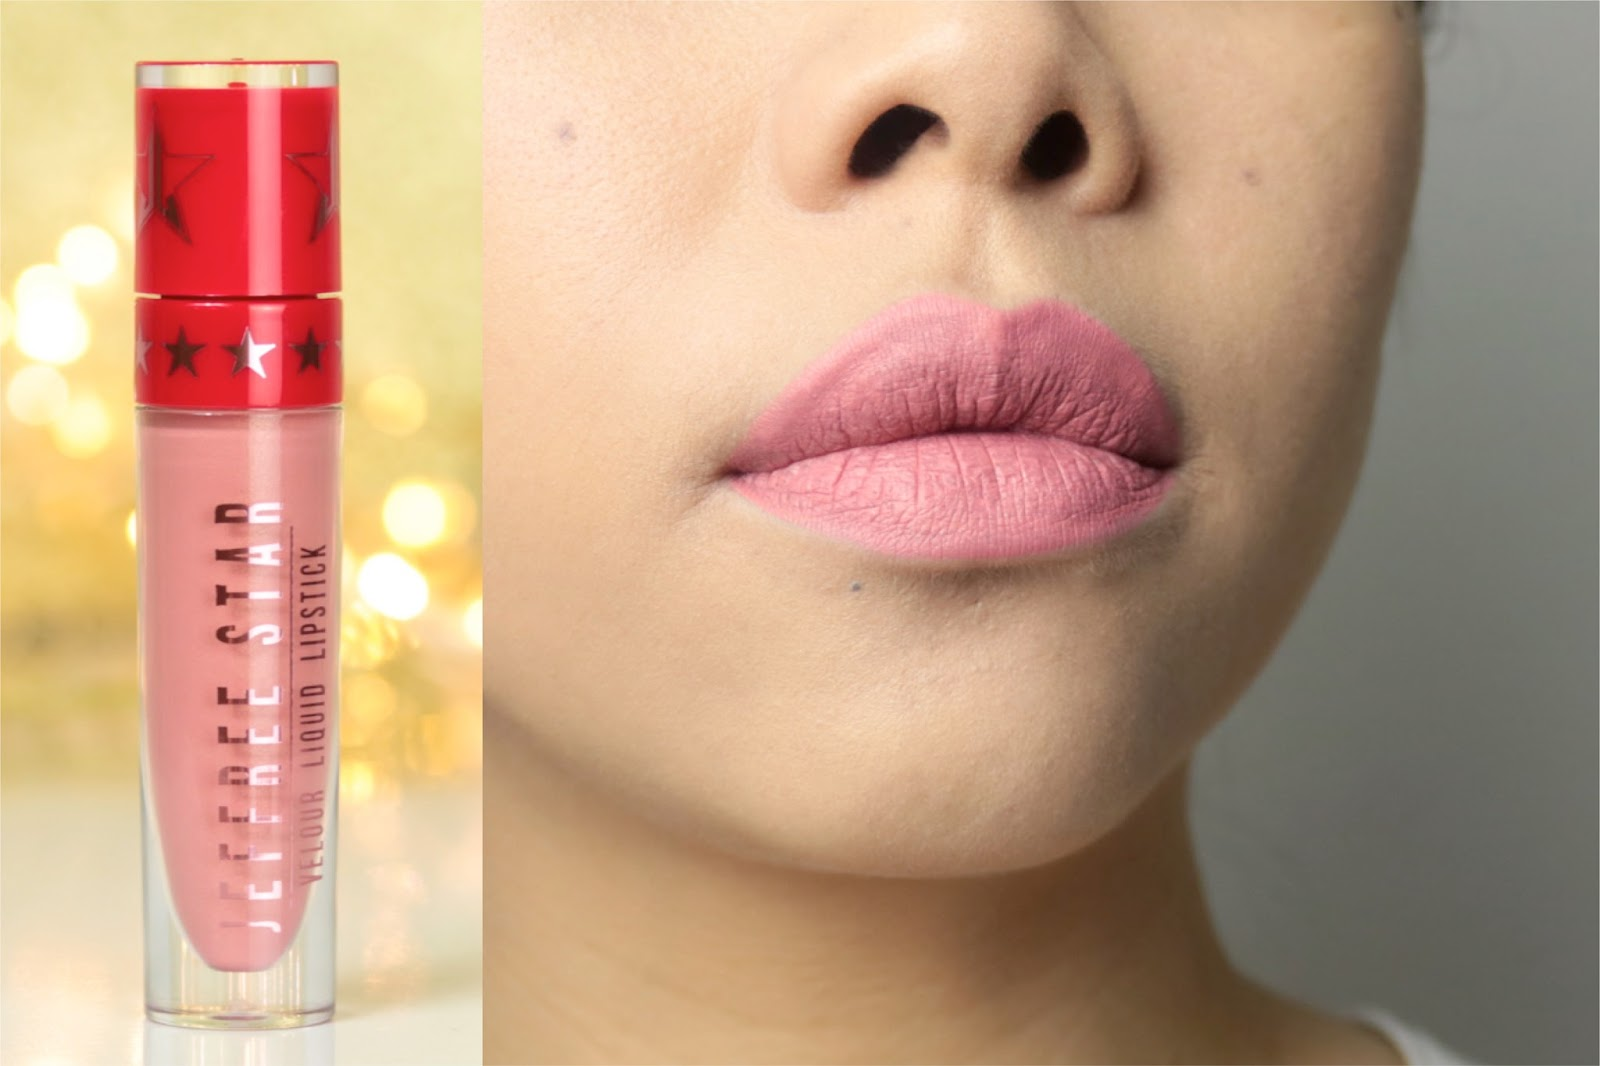 Jeffree Star Velour Liquid Lipsticks | La collection de Noël avis et swatch Chrysanthemum